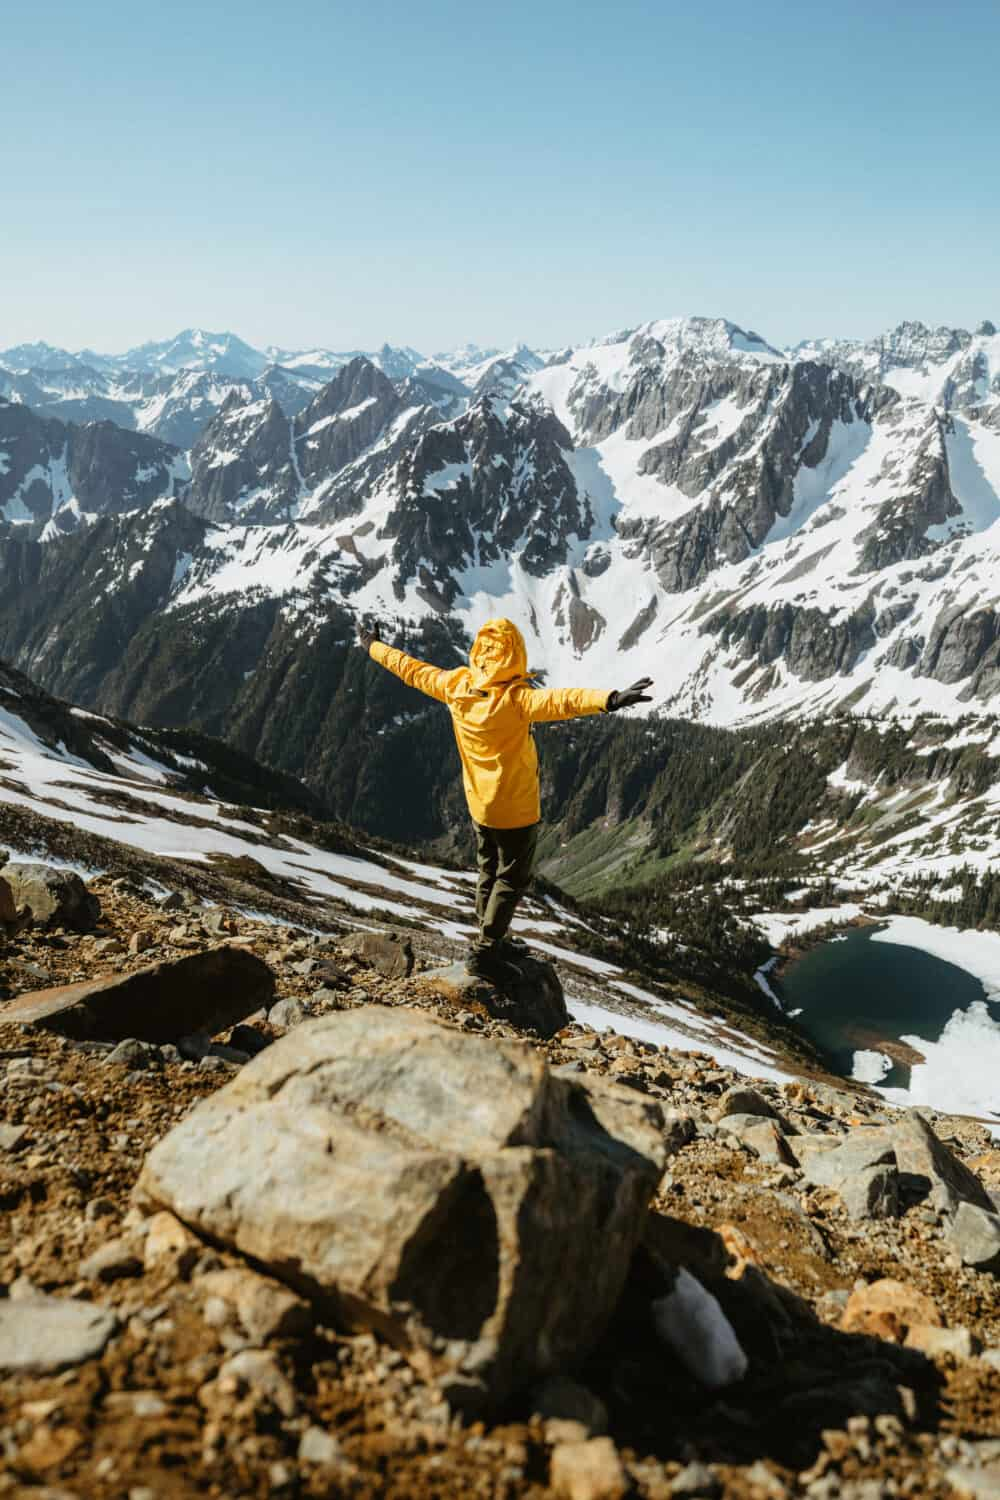 Man in yellow jacket, standing in front of North Cascade Mountain range in July